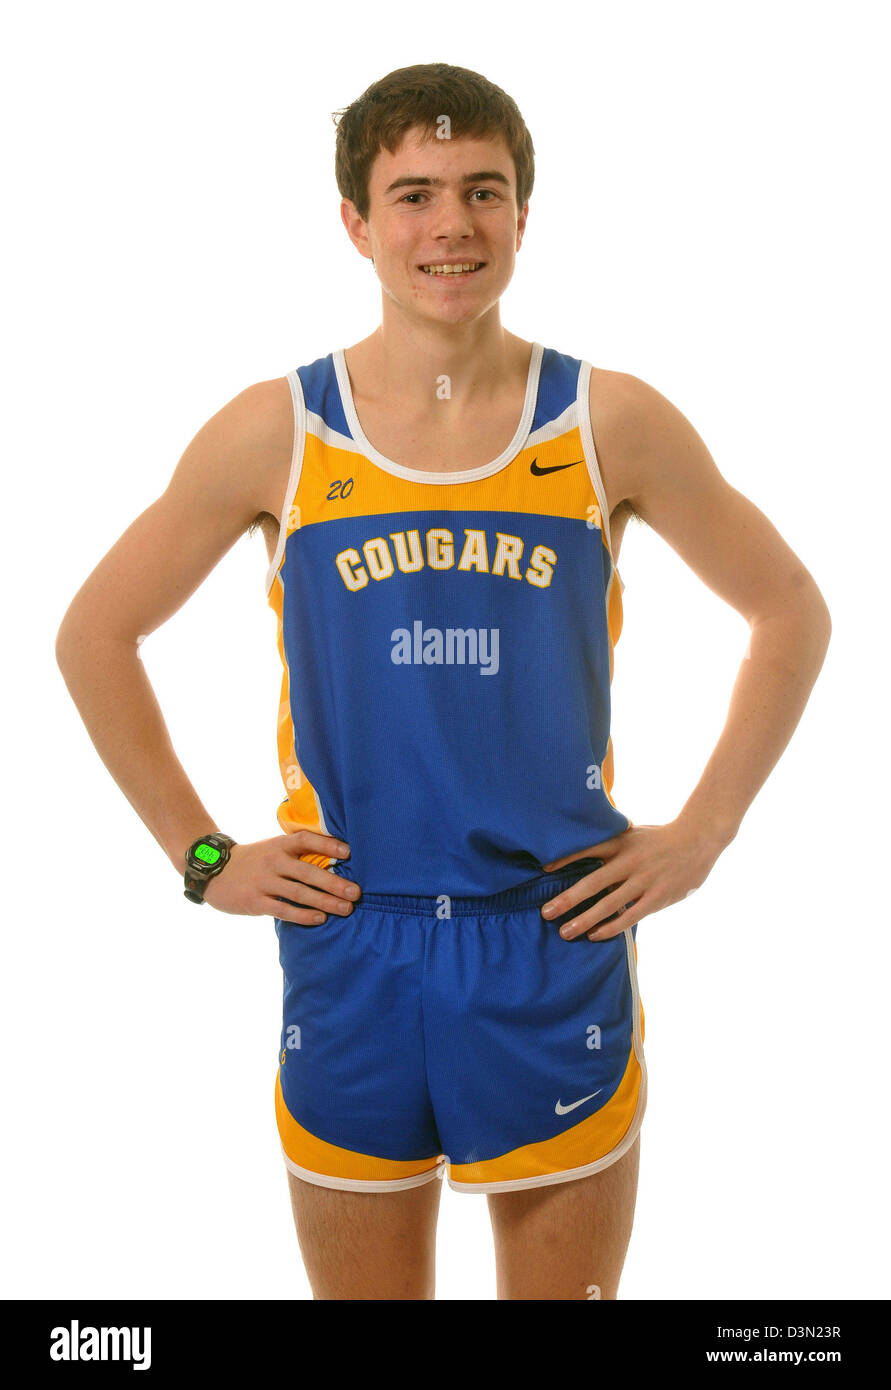 Standout High School Cross Country runner in CT USA - Stock Image